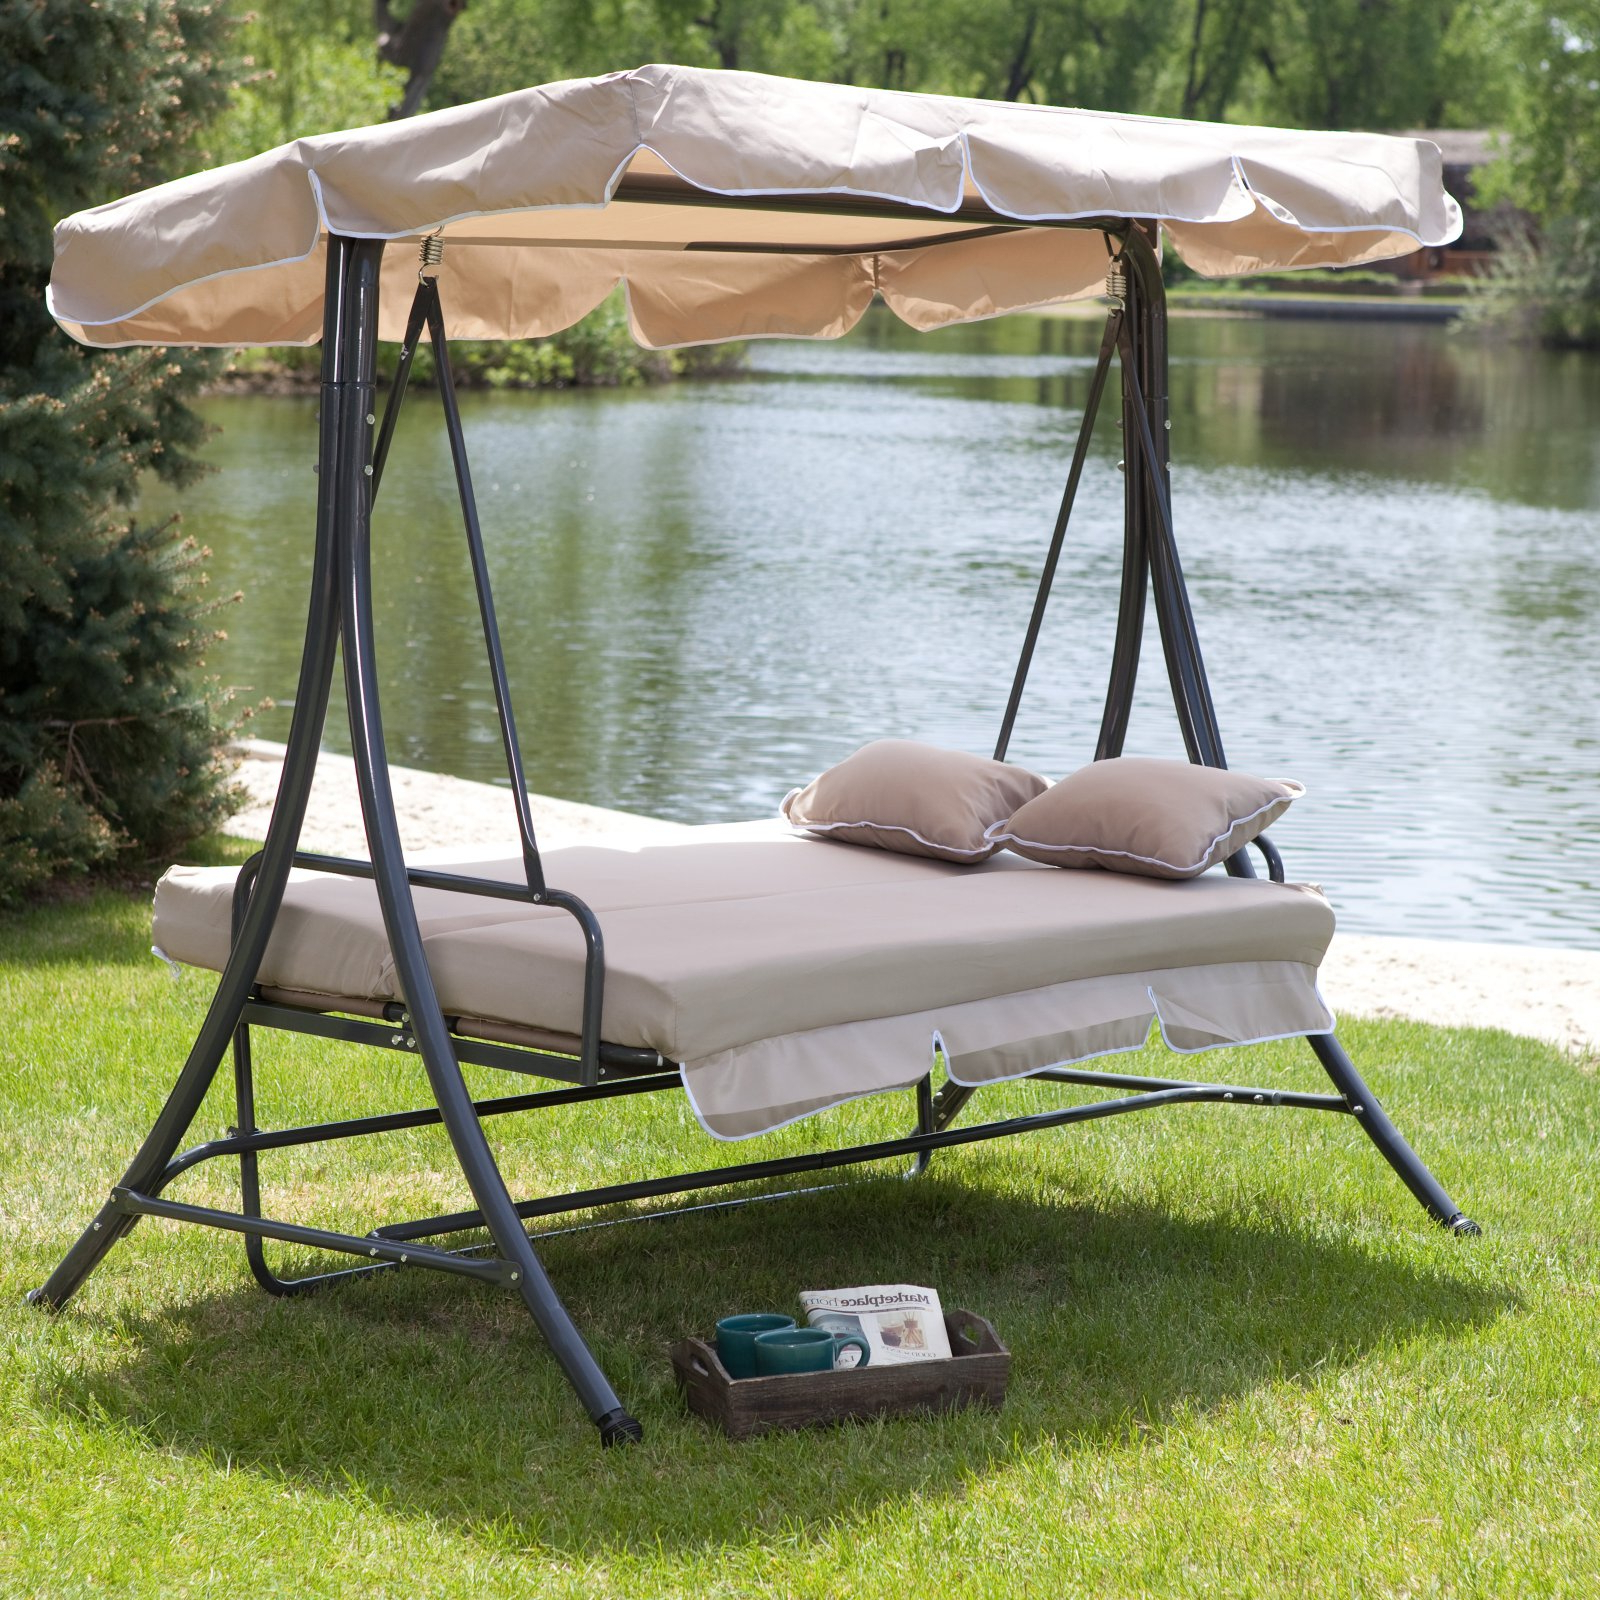 Favorite 3 Person Outdoor Porch Swings With Stand With Coral Coast Lazy Caye 3 Person All Weather Swing Bed With Toss Pillows – Cappuccino – Walmart (View 9 of 30)